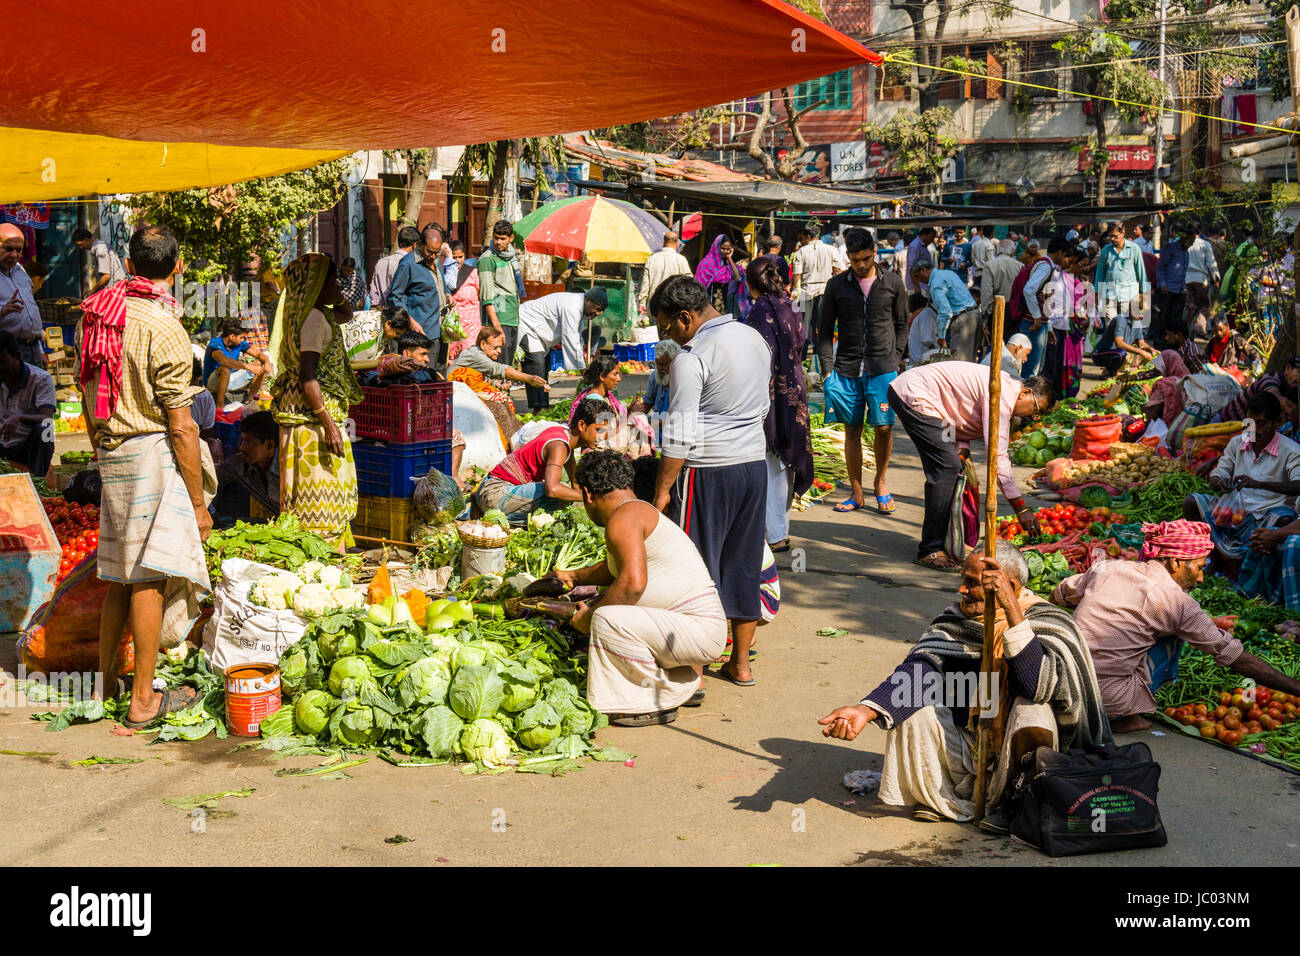 Many people on a busy vegetable market street in the suburb Sealdah - Stock Image